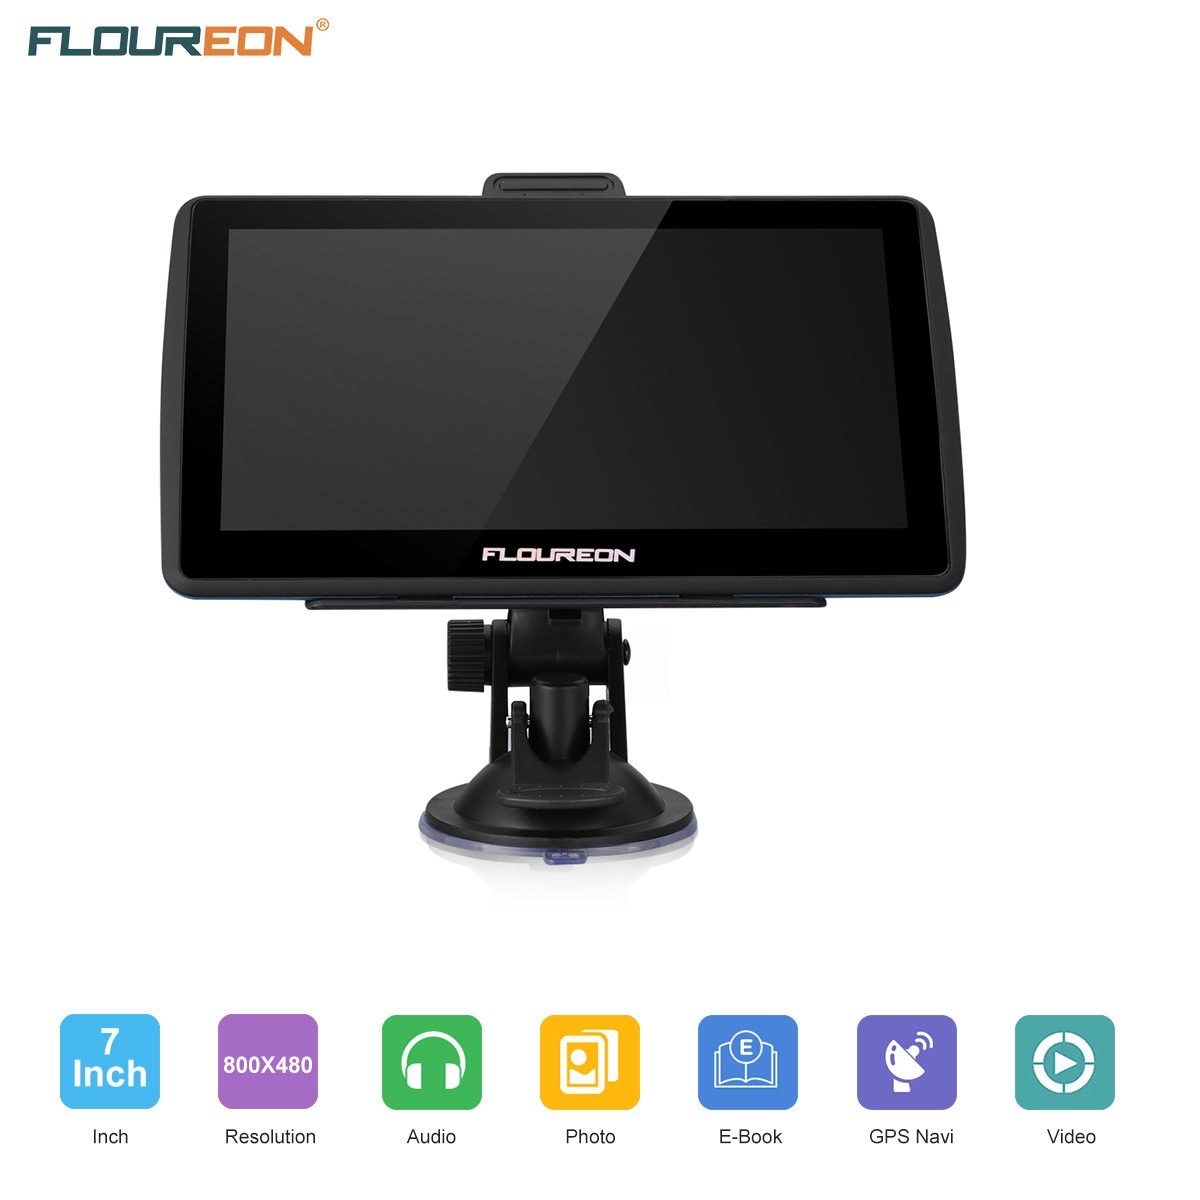 Floureon Handsfree GPS Navigation for Car, 7 inch 8GB Touchscreen Voice Reminding Vehicle GPS Navigator System Free Lifetime Map Update with Car Charger, back Bracket, Mount